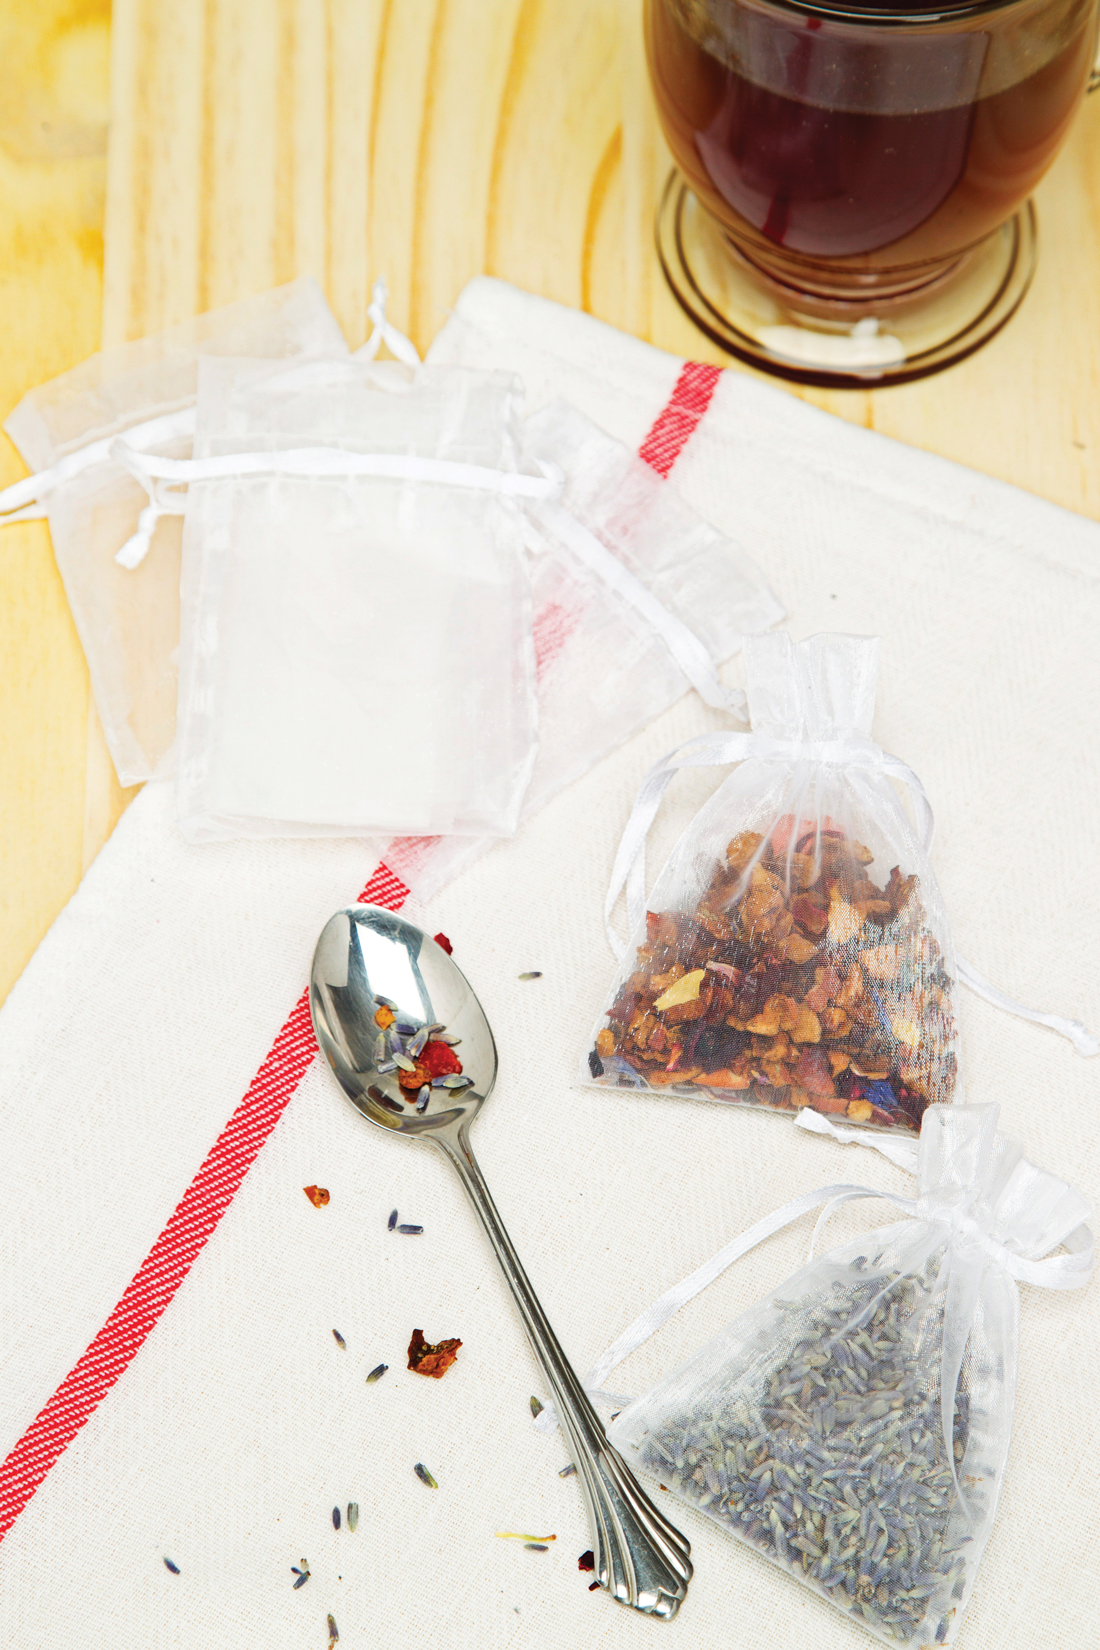 Custom filled sachets filled with loose tea blends, arranged near a clear glass mug and empty sachet bags.